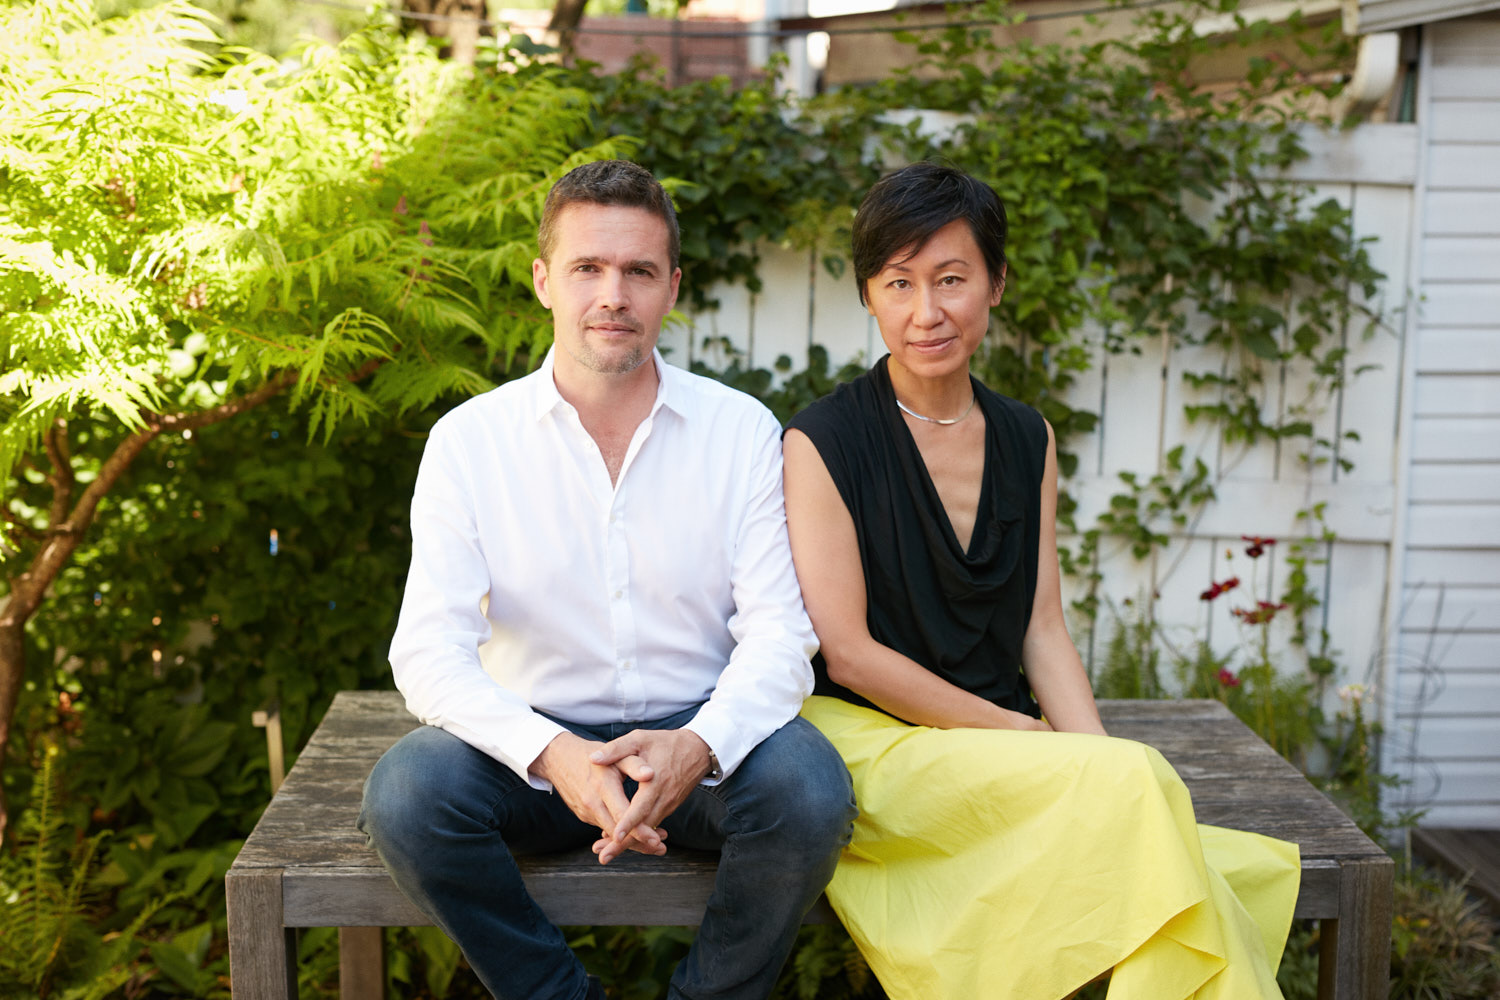 Creative Business Portraits of nArchitects Founders Eric and Mimi in Brooklyn Backyard Sitting on Wood Table